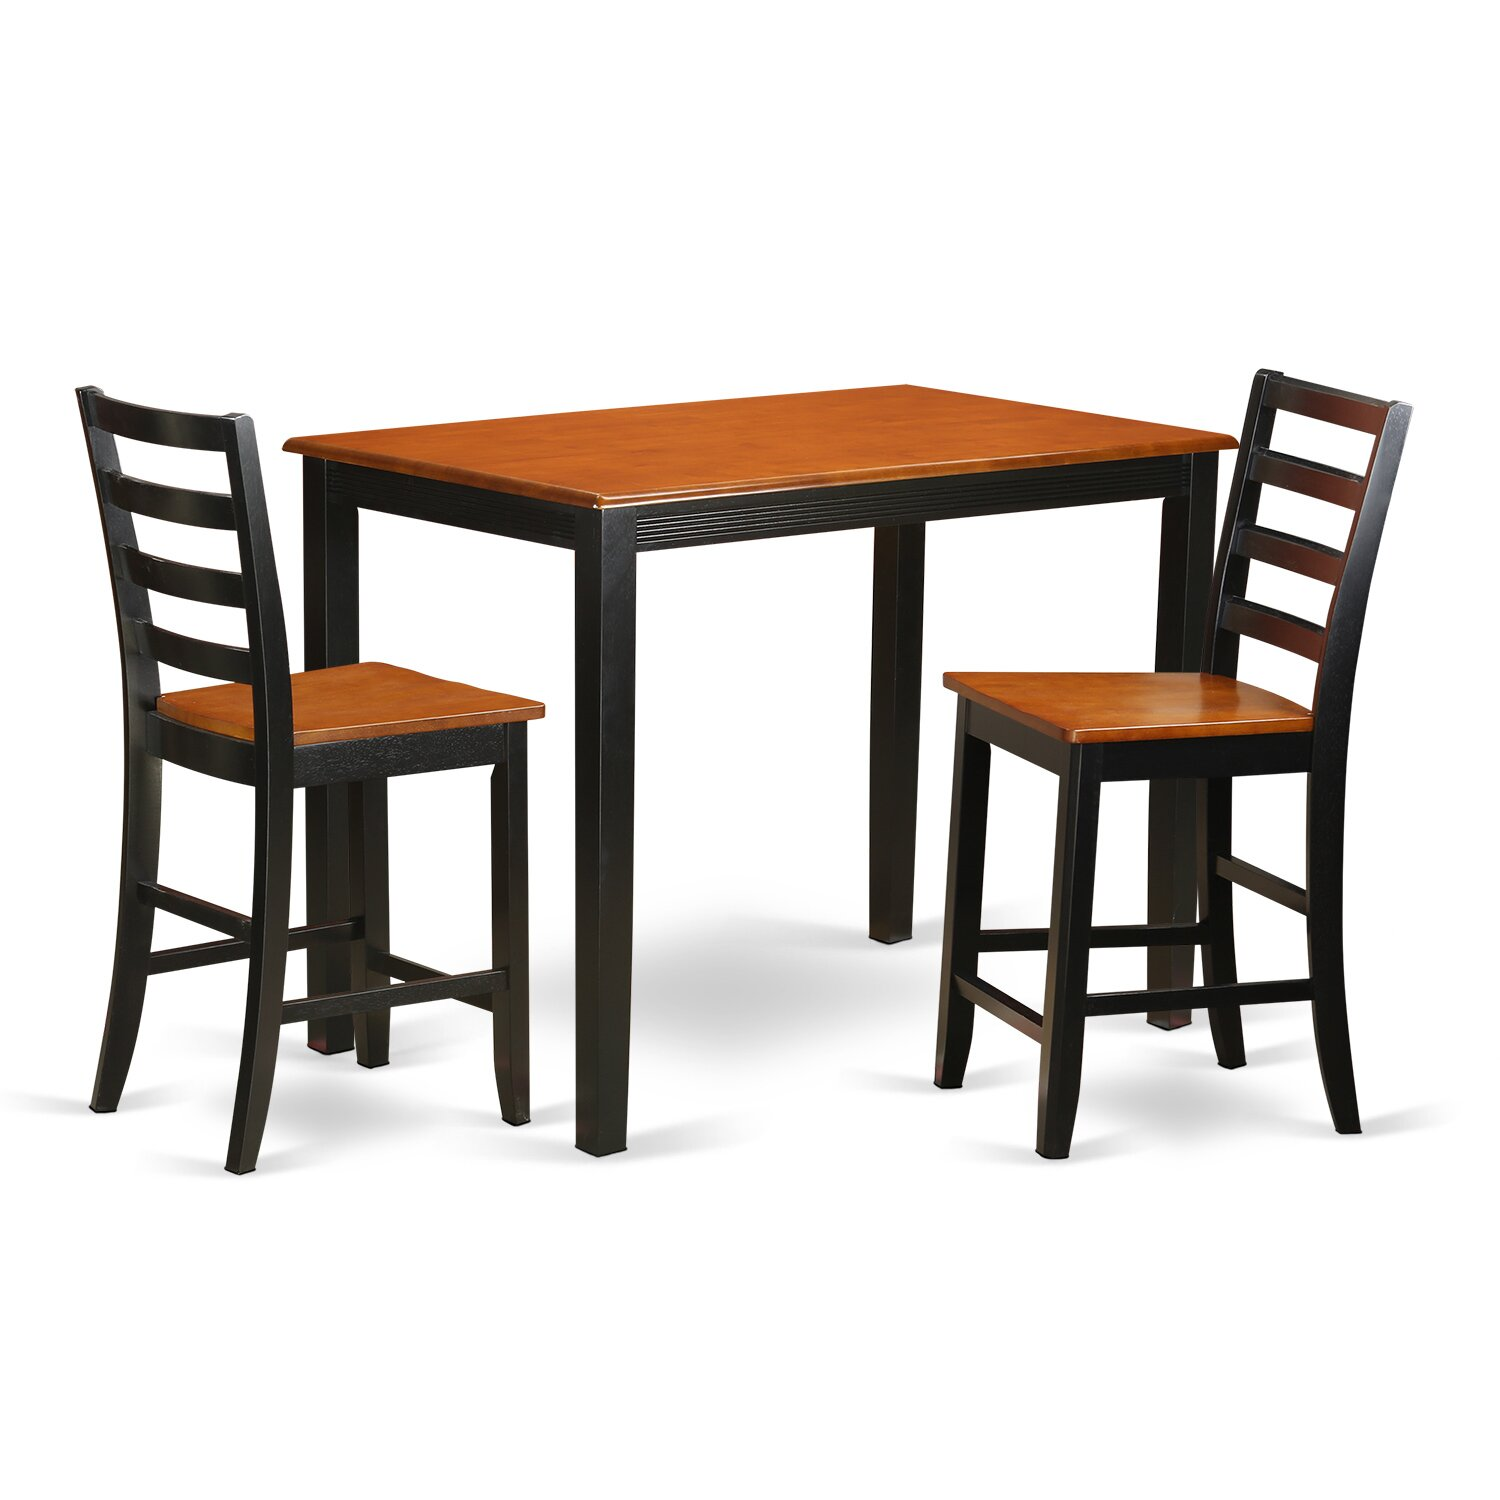 Wooden importers yarmouth 3 piece counter height pub table for Kitchen dining furniture